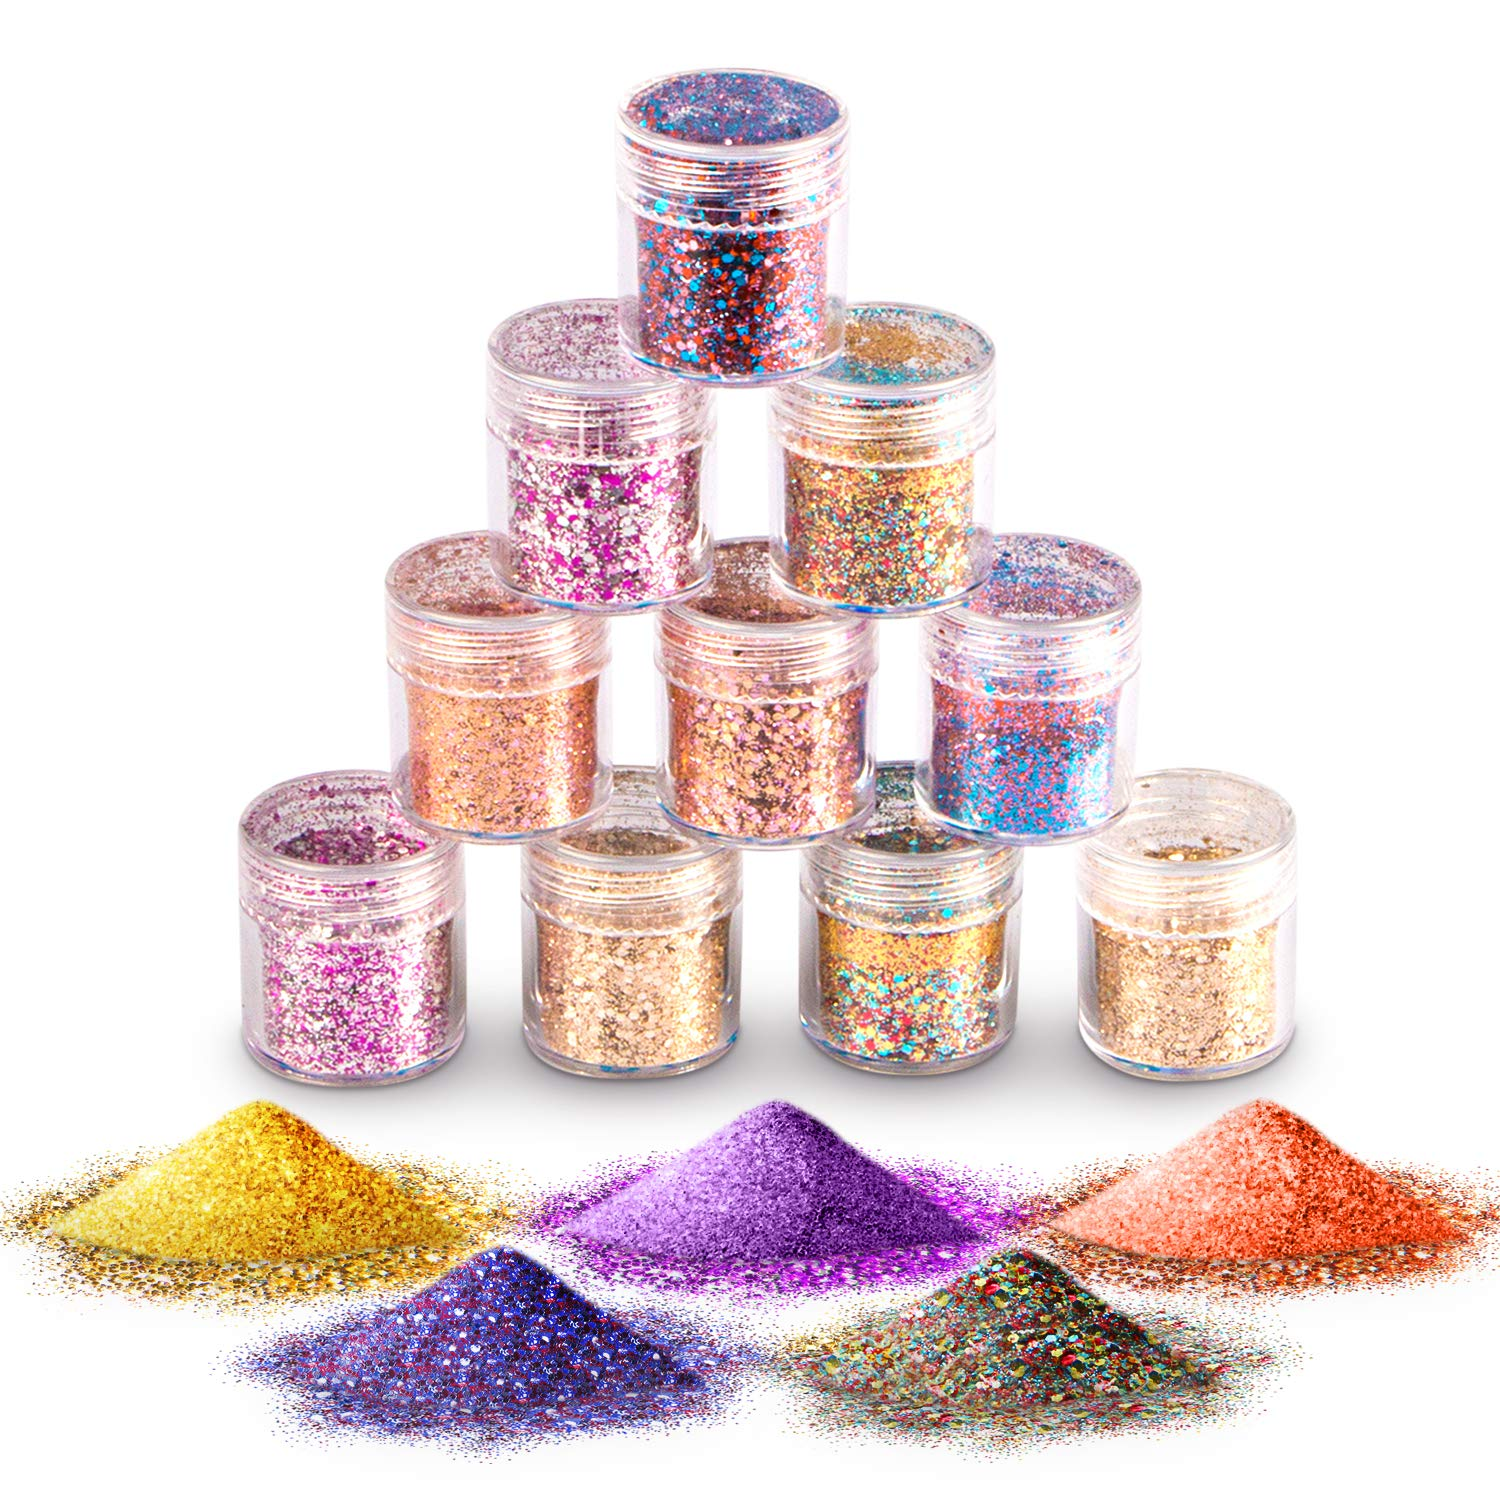 Face Glitter Chunky Glitter, Hexagons Cosmetic Glitter Paillette Sparkling Decoration Glitter for Body, Cheeks and Hair -(10 Pack)